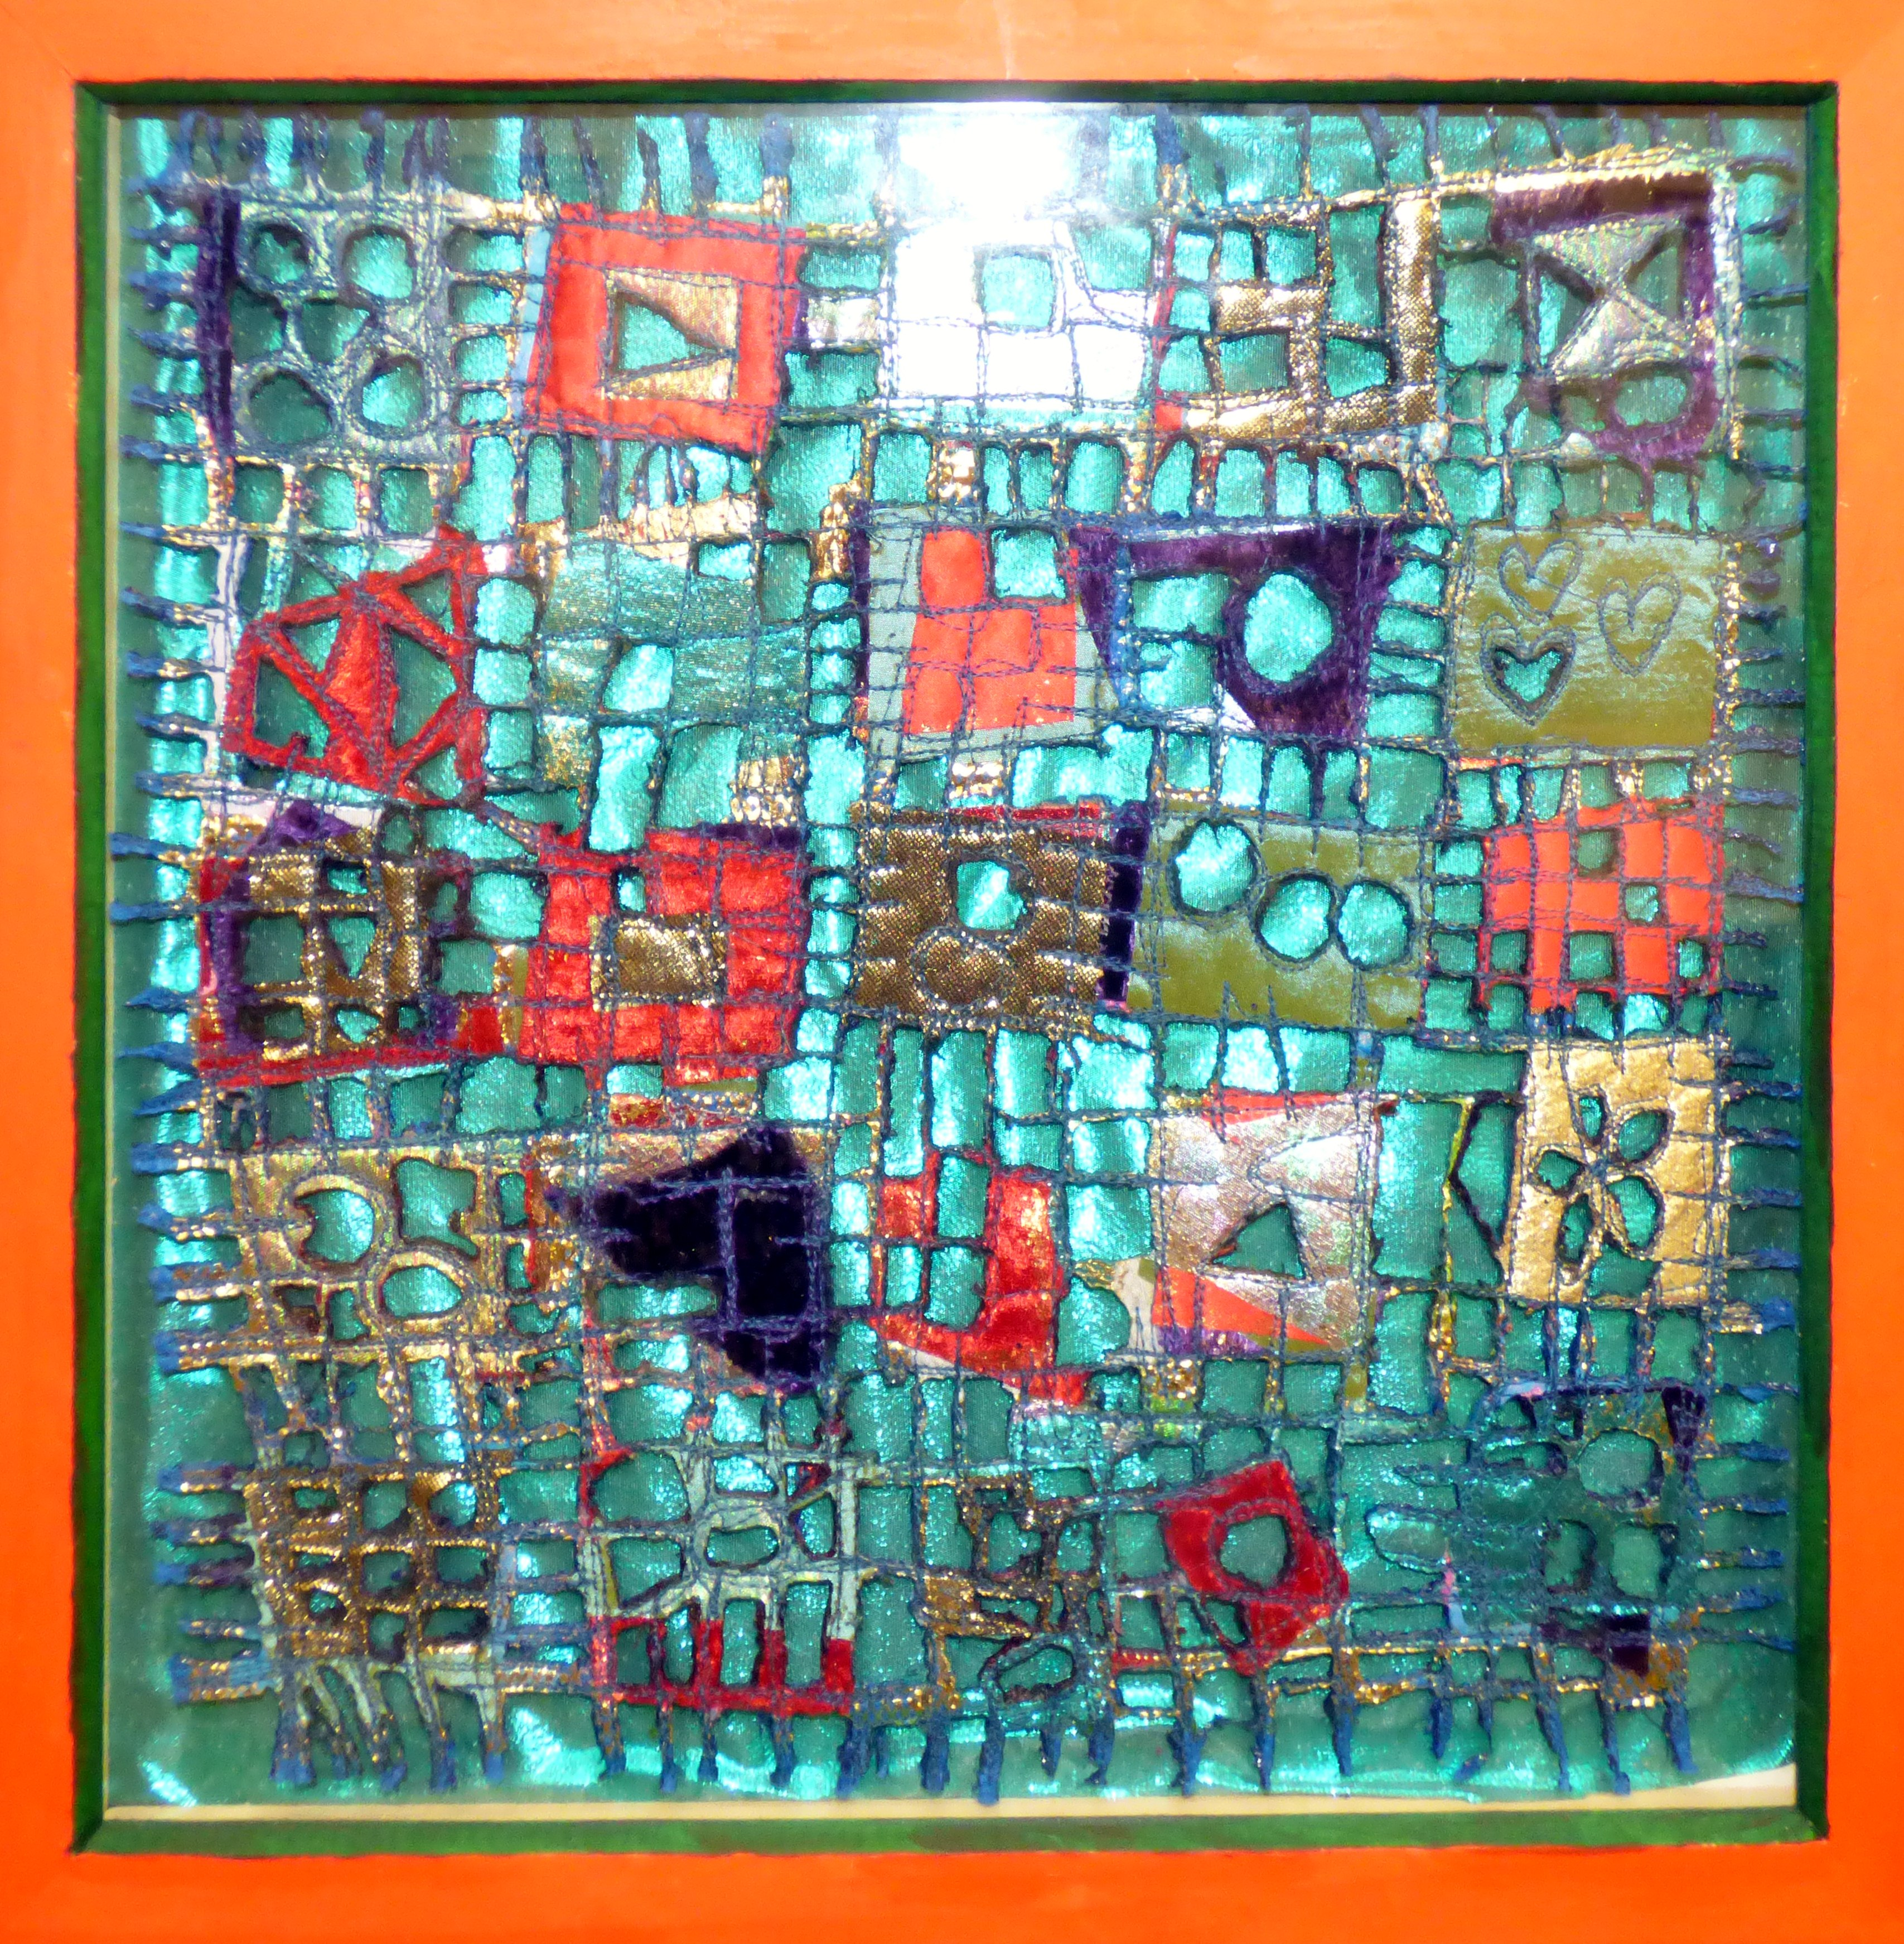 A STUDY IN REDS AND GREENS by Janet Speechley, layering, bonding and burning